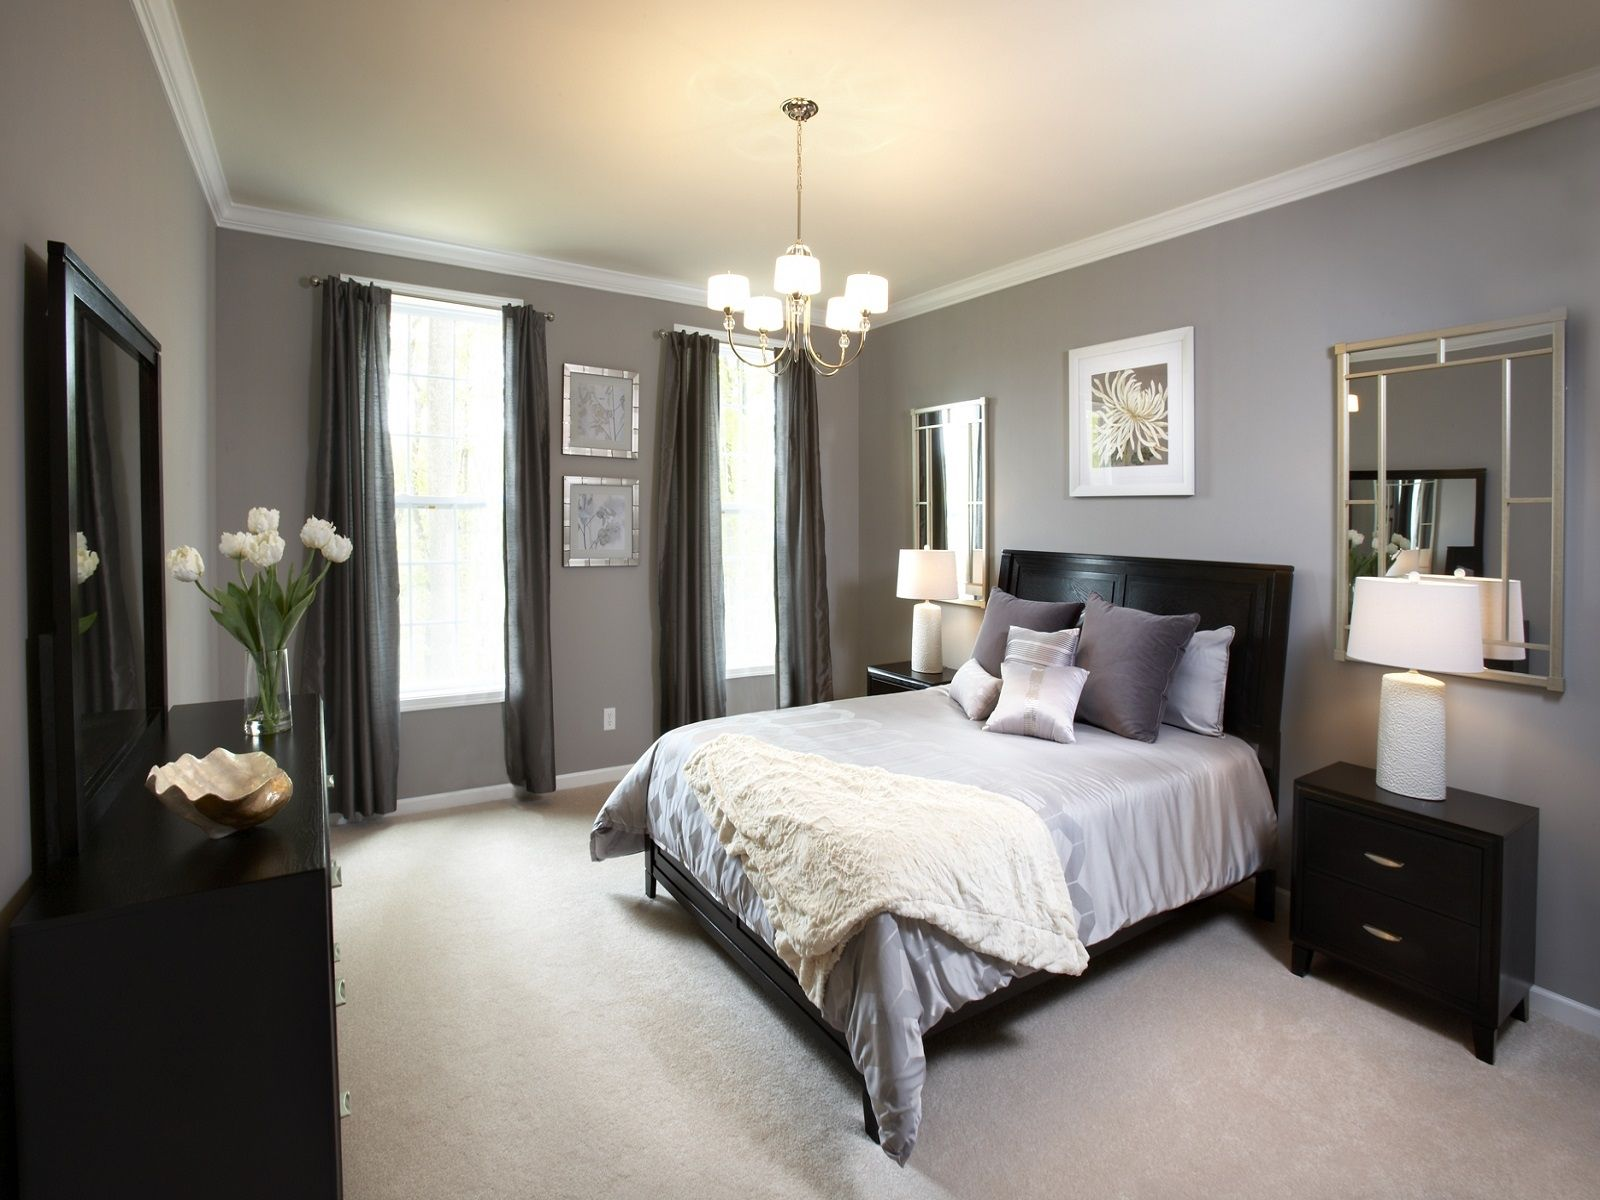 45 beautiful paint color ideas for master bedroom - Bedroom Decor Ideas